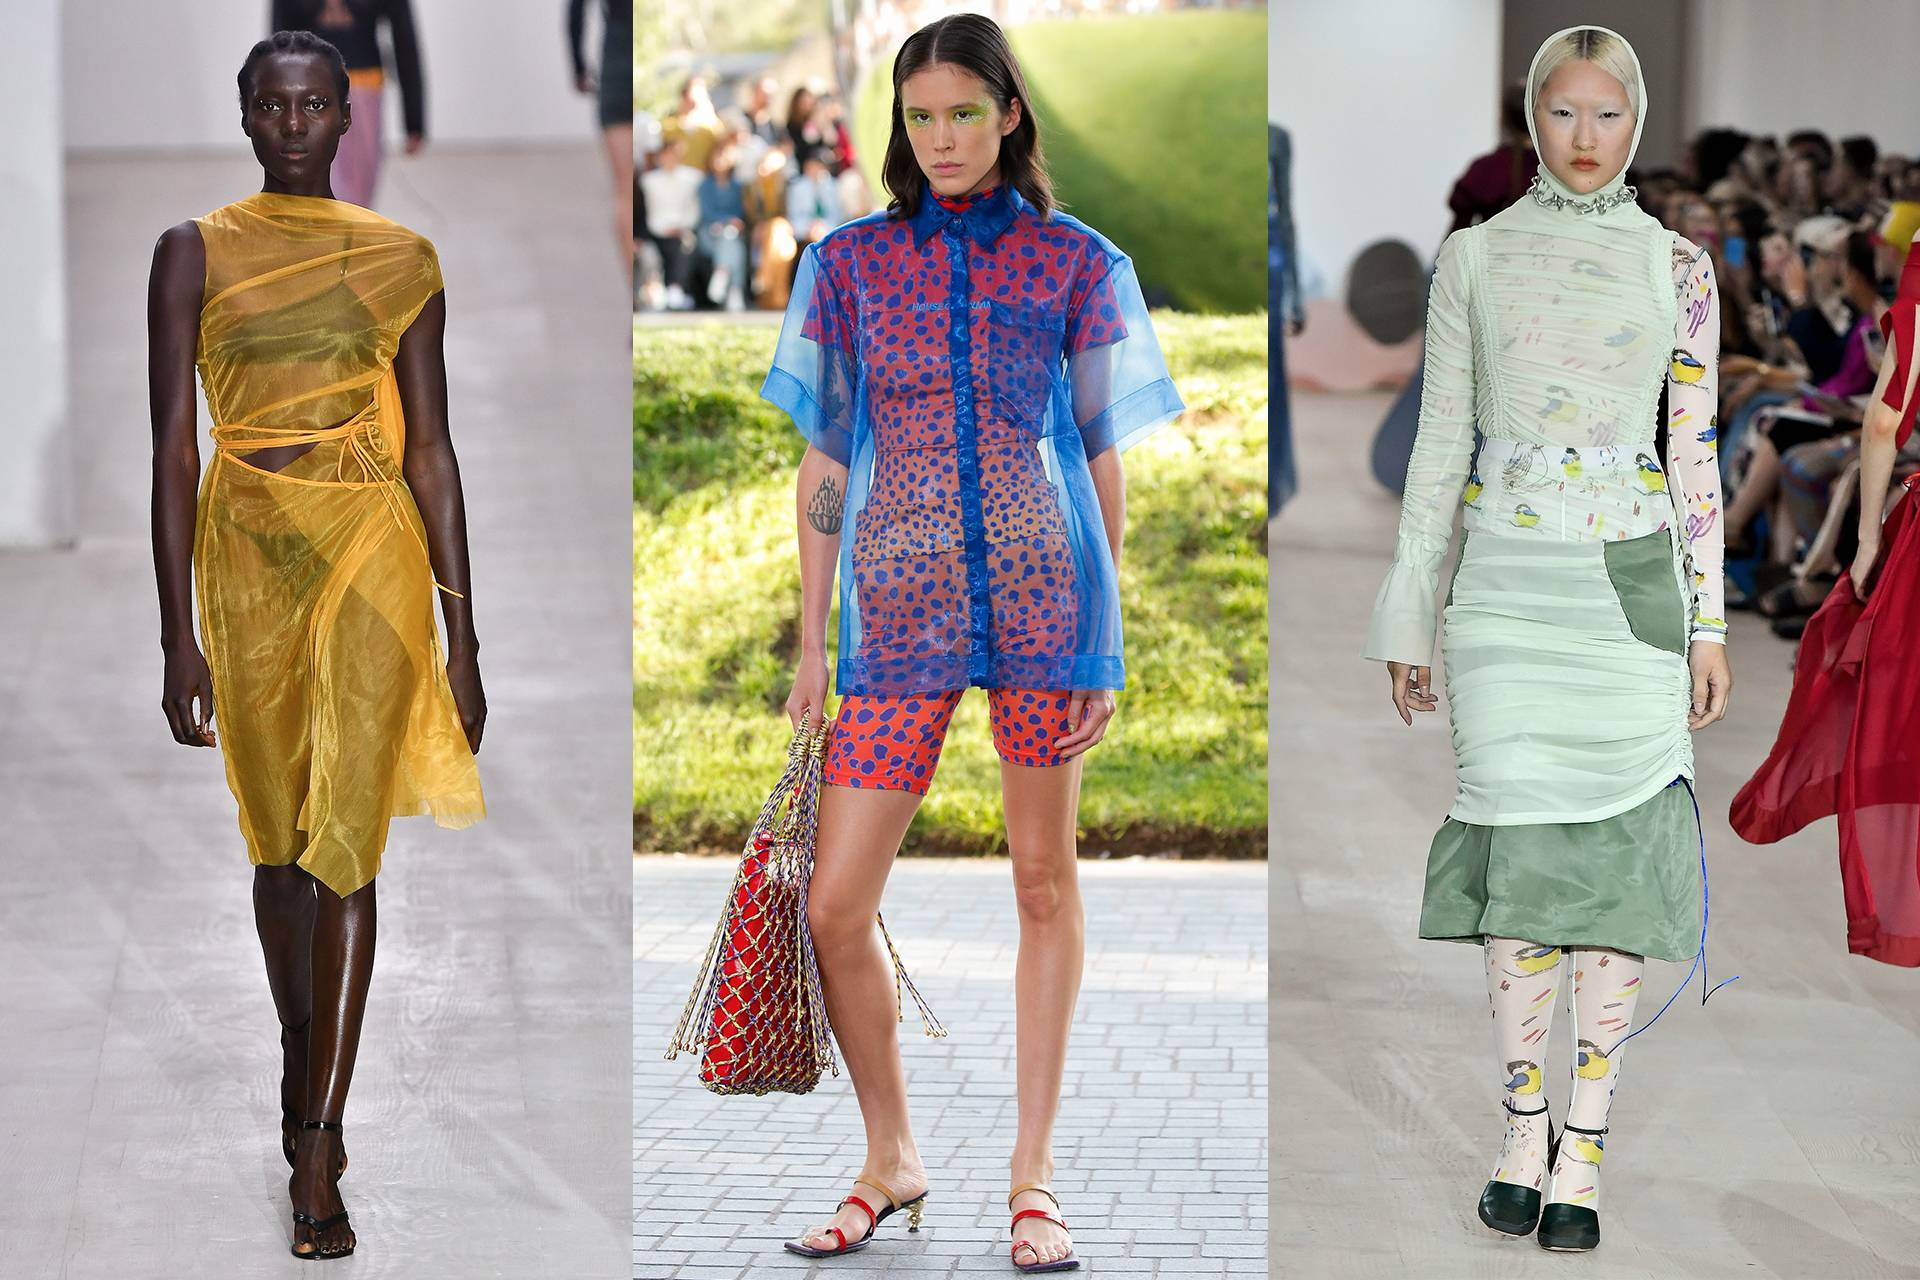 Spring Summer 27 Fashion Trends: Looks & How To Wear Them